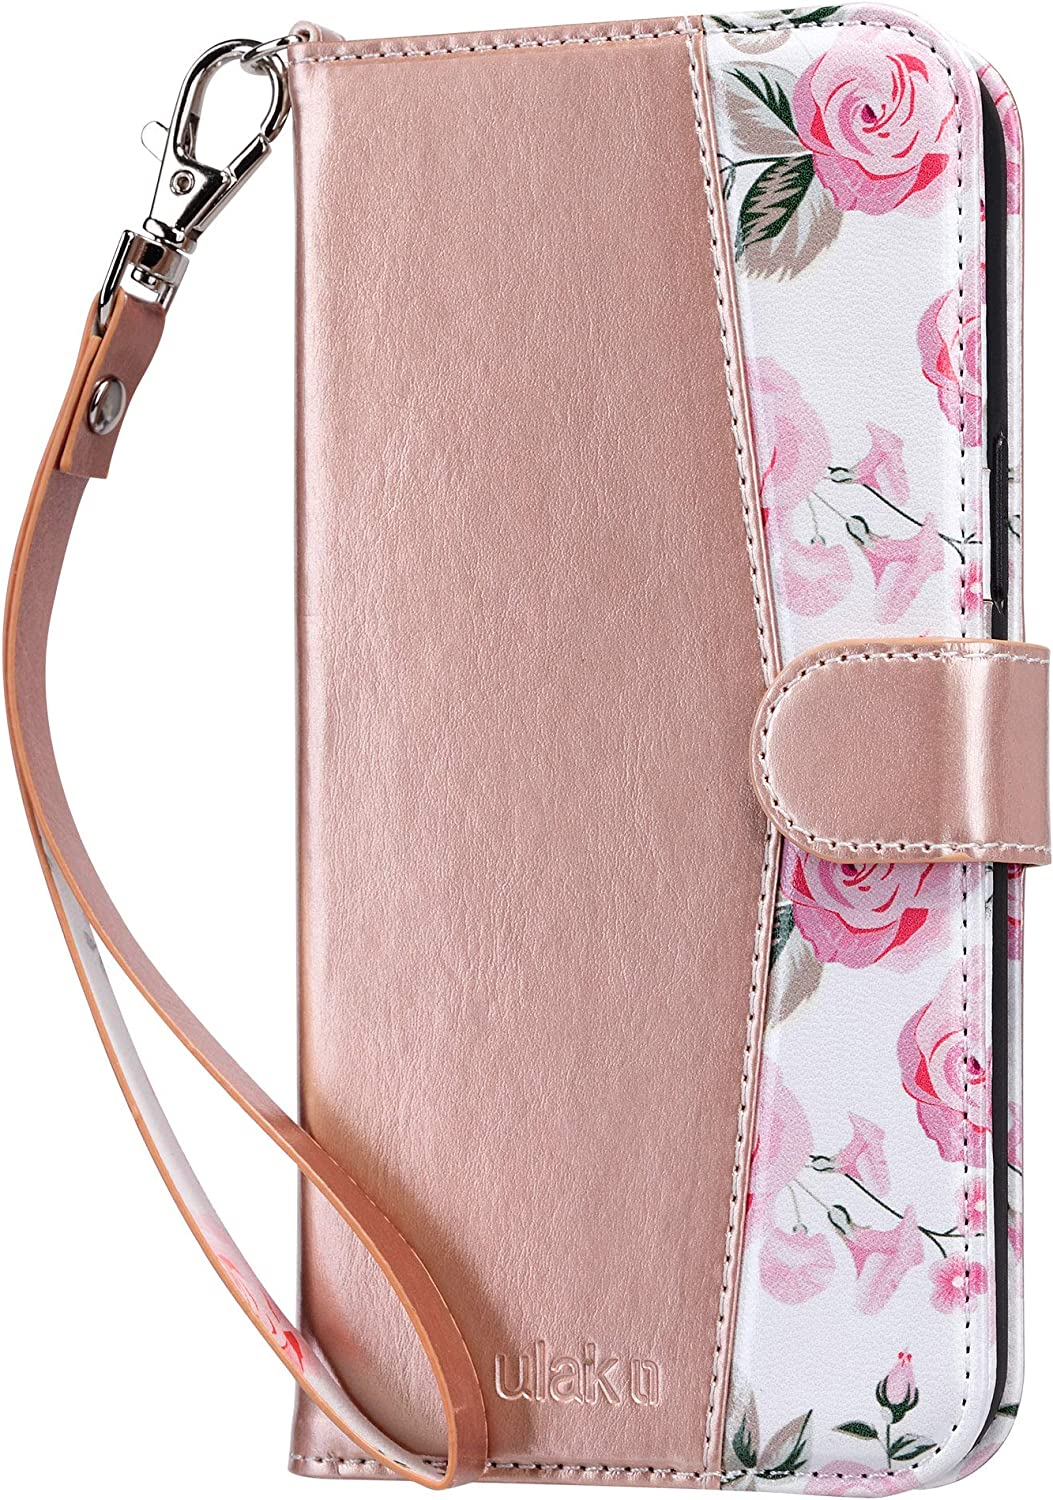 ULAK Compatible with iPhone 12 Pro Max Wallet Case with Card Holders, Designed Flip PU Leather Kickstand Shockproof Protective Phone Cover for iPhone 12 Pro Max 6.7 inch, Rose Gold